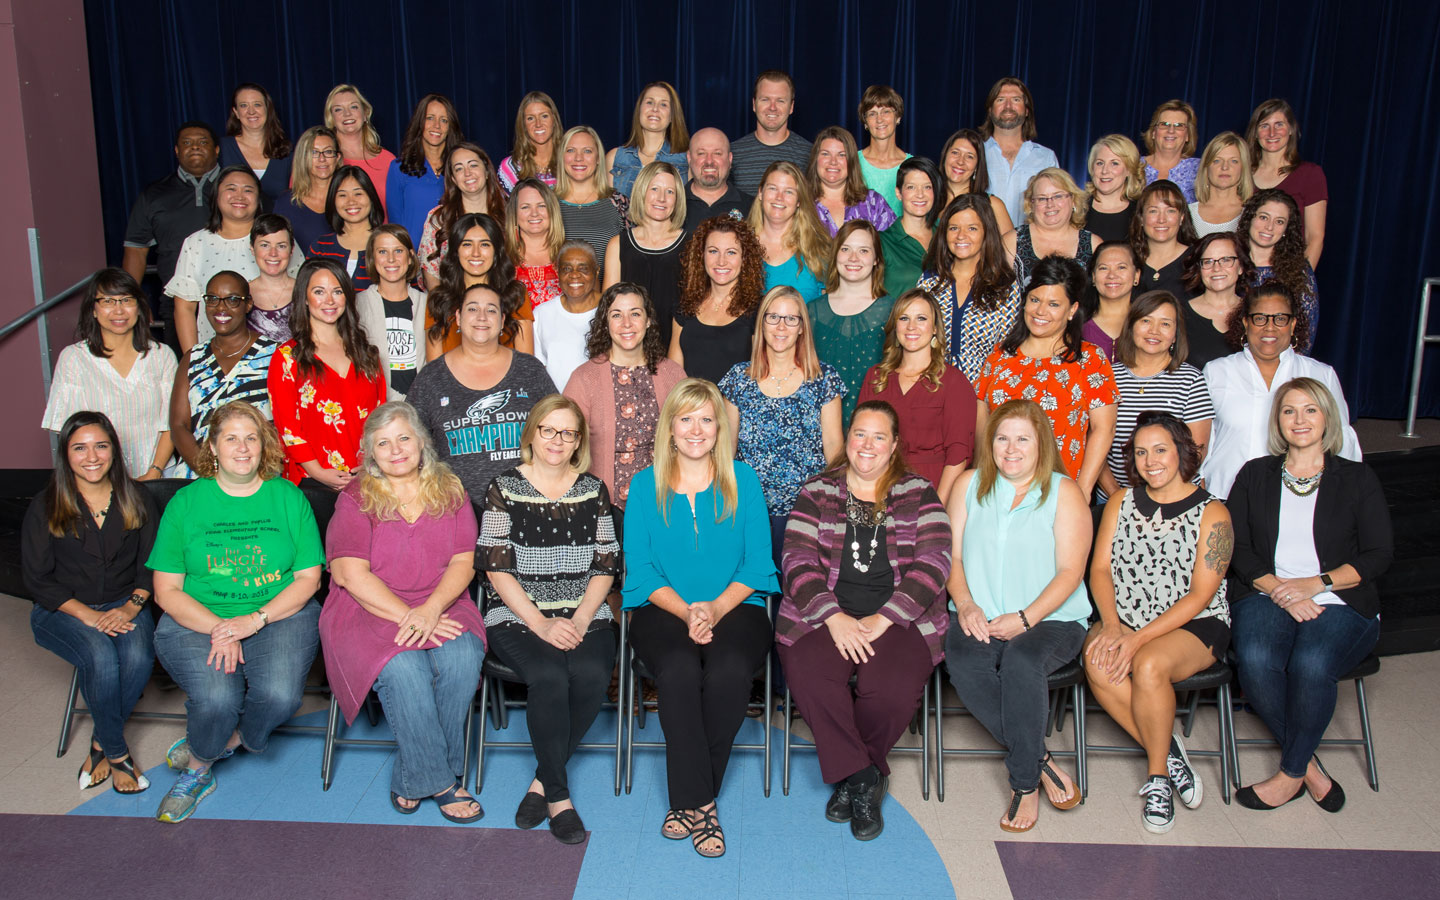 Charles and Phyllis Frias Elementary School - We Love Our Schools